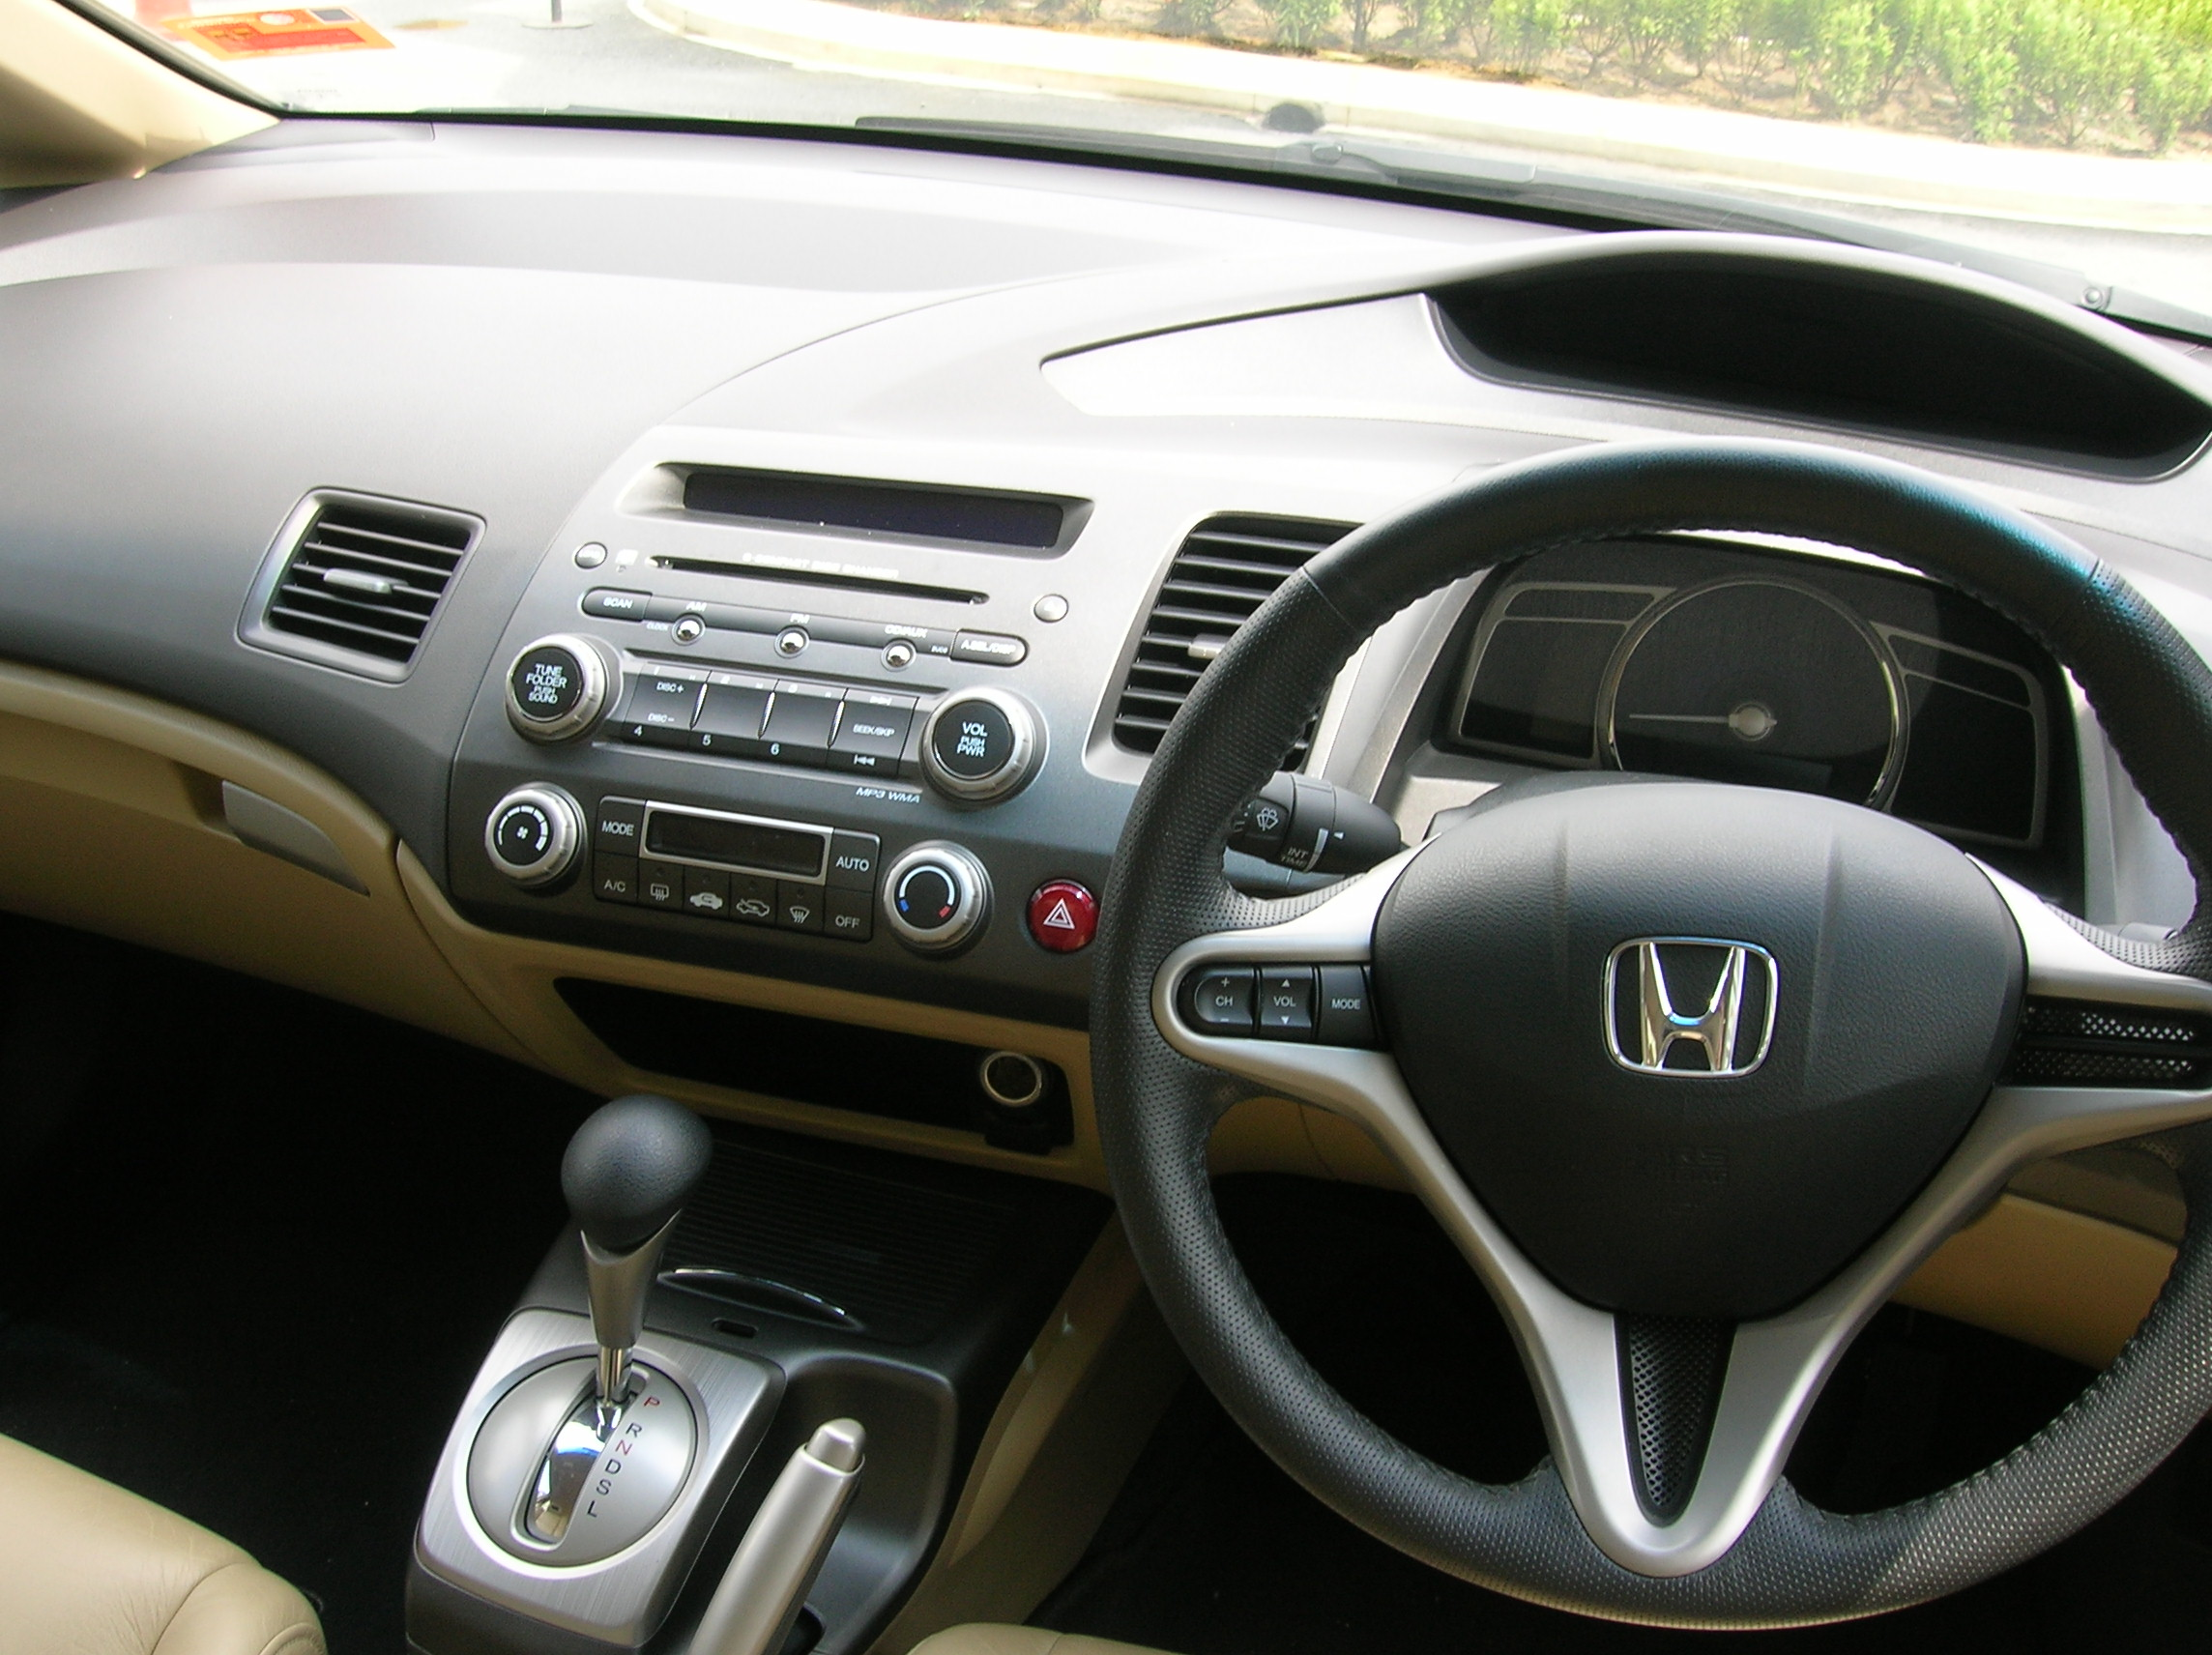 Interior's standard Honda Civic.